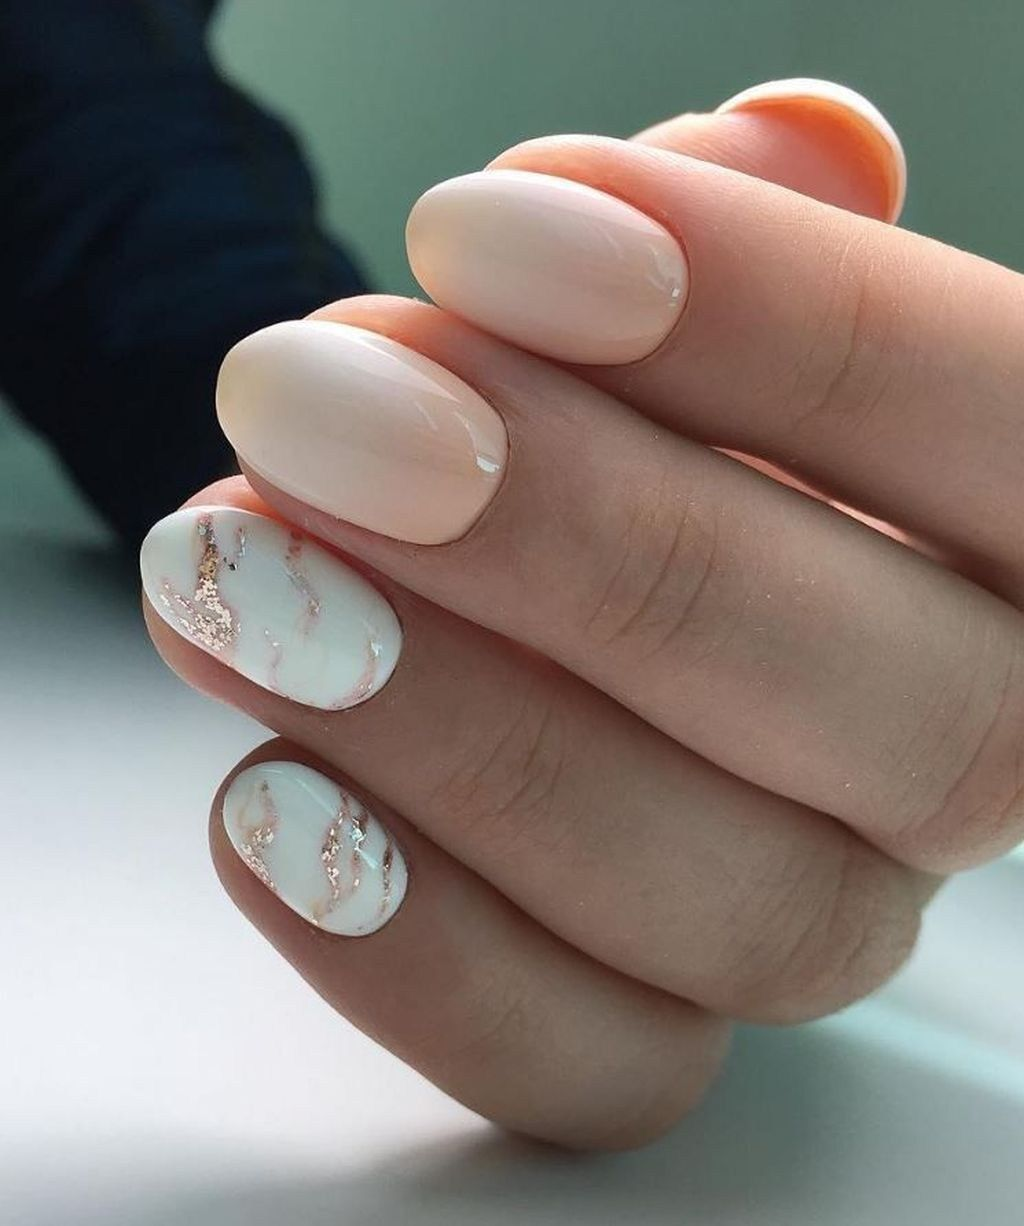 Simple Fall Nail Art Designs Ideas You Need To Try43 Simple Fall Nails Trendy Nail Art Designs Fall Nail Art Designs